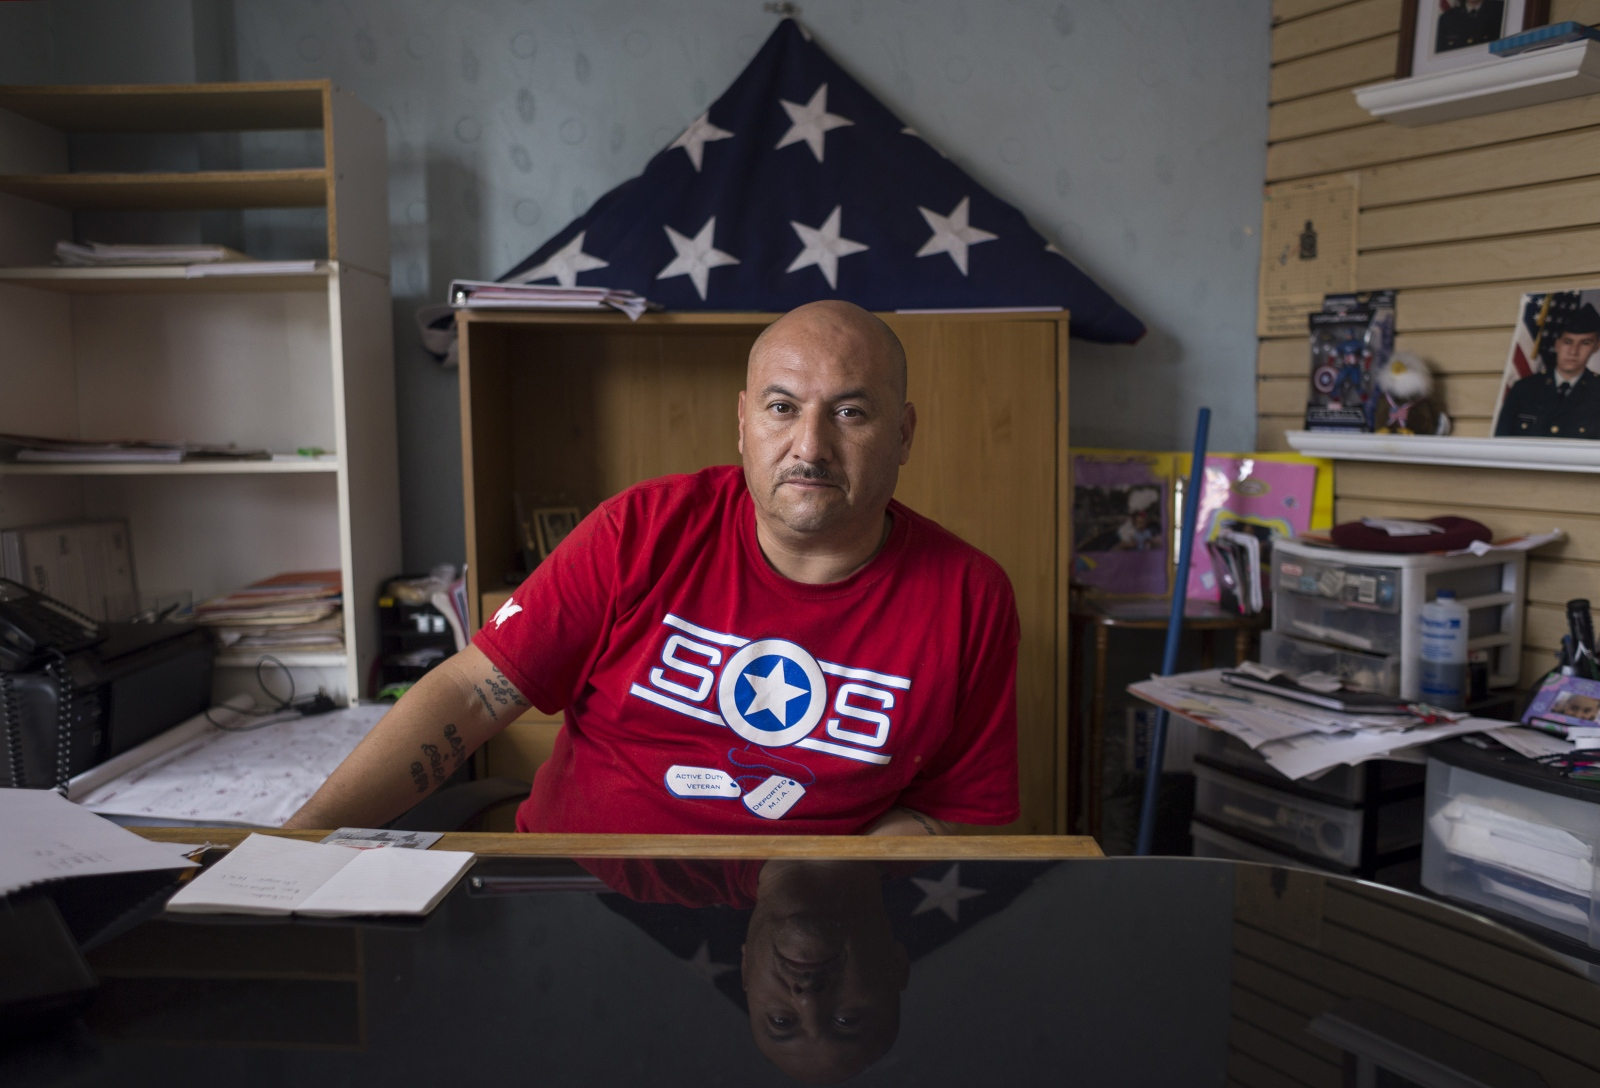 Deported Army veteran Hector Barajas, 38, sits at his desk at the Deported Veterans Support House, where he lives and works. The mission of the Support House is to find and provide help to deported veterans around the world.